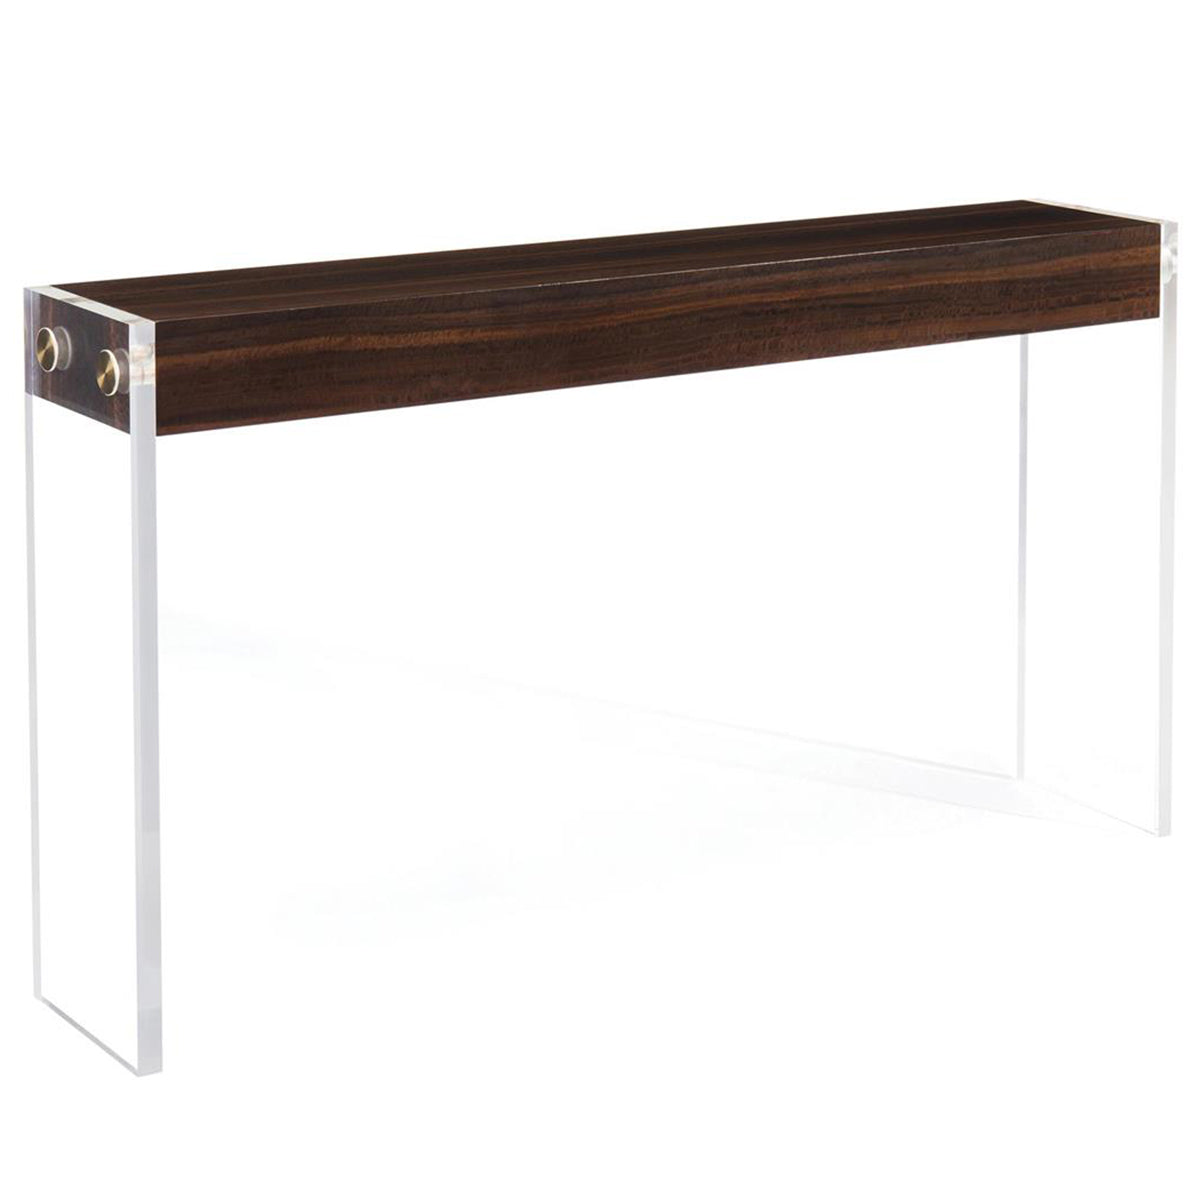 Aristar Console Table in Smoked Eucalyptus